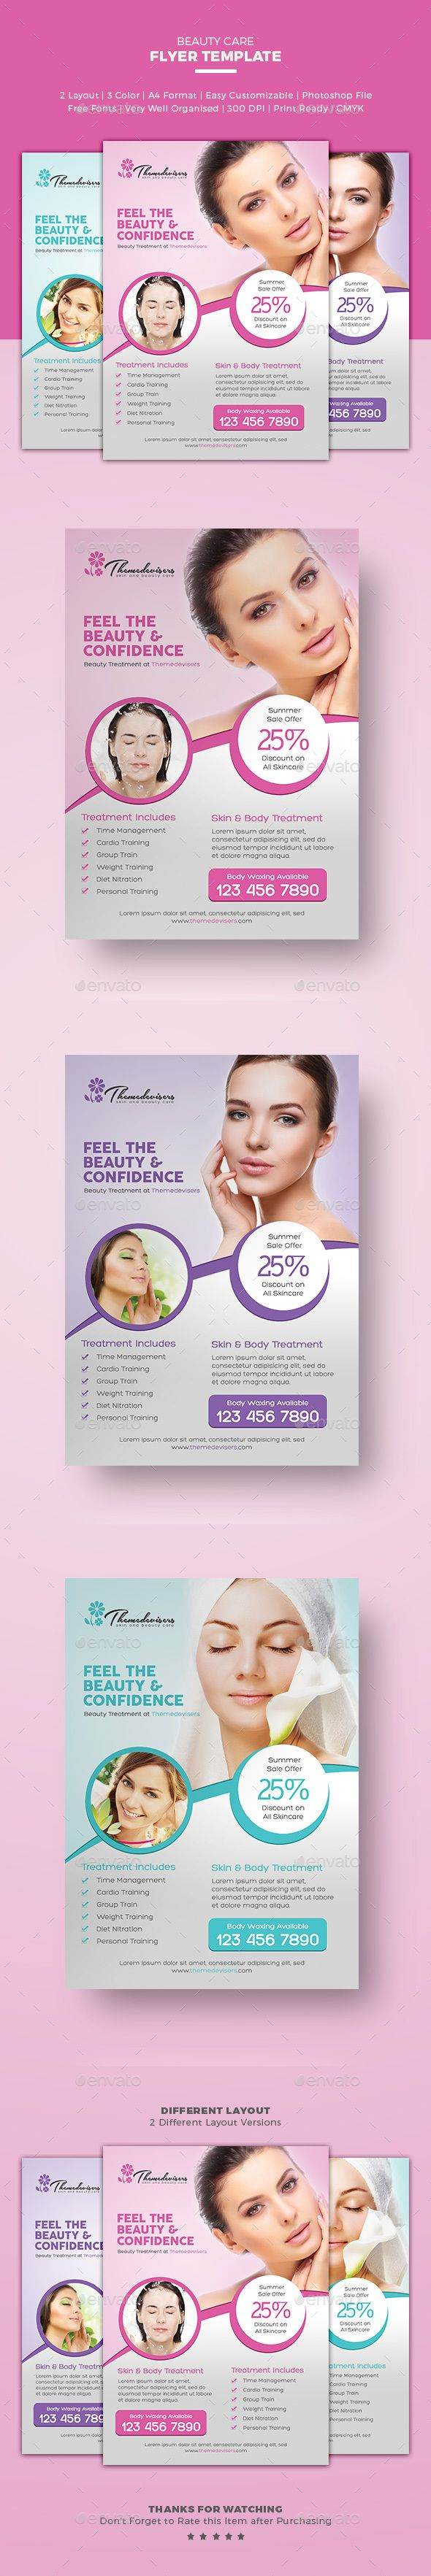 Beauty Care Flyer | Download https://graphicriver.net/item/beauty-care-flyer/16185376?ref=themedevisers